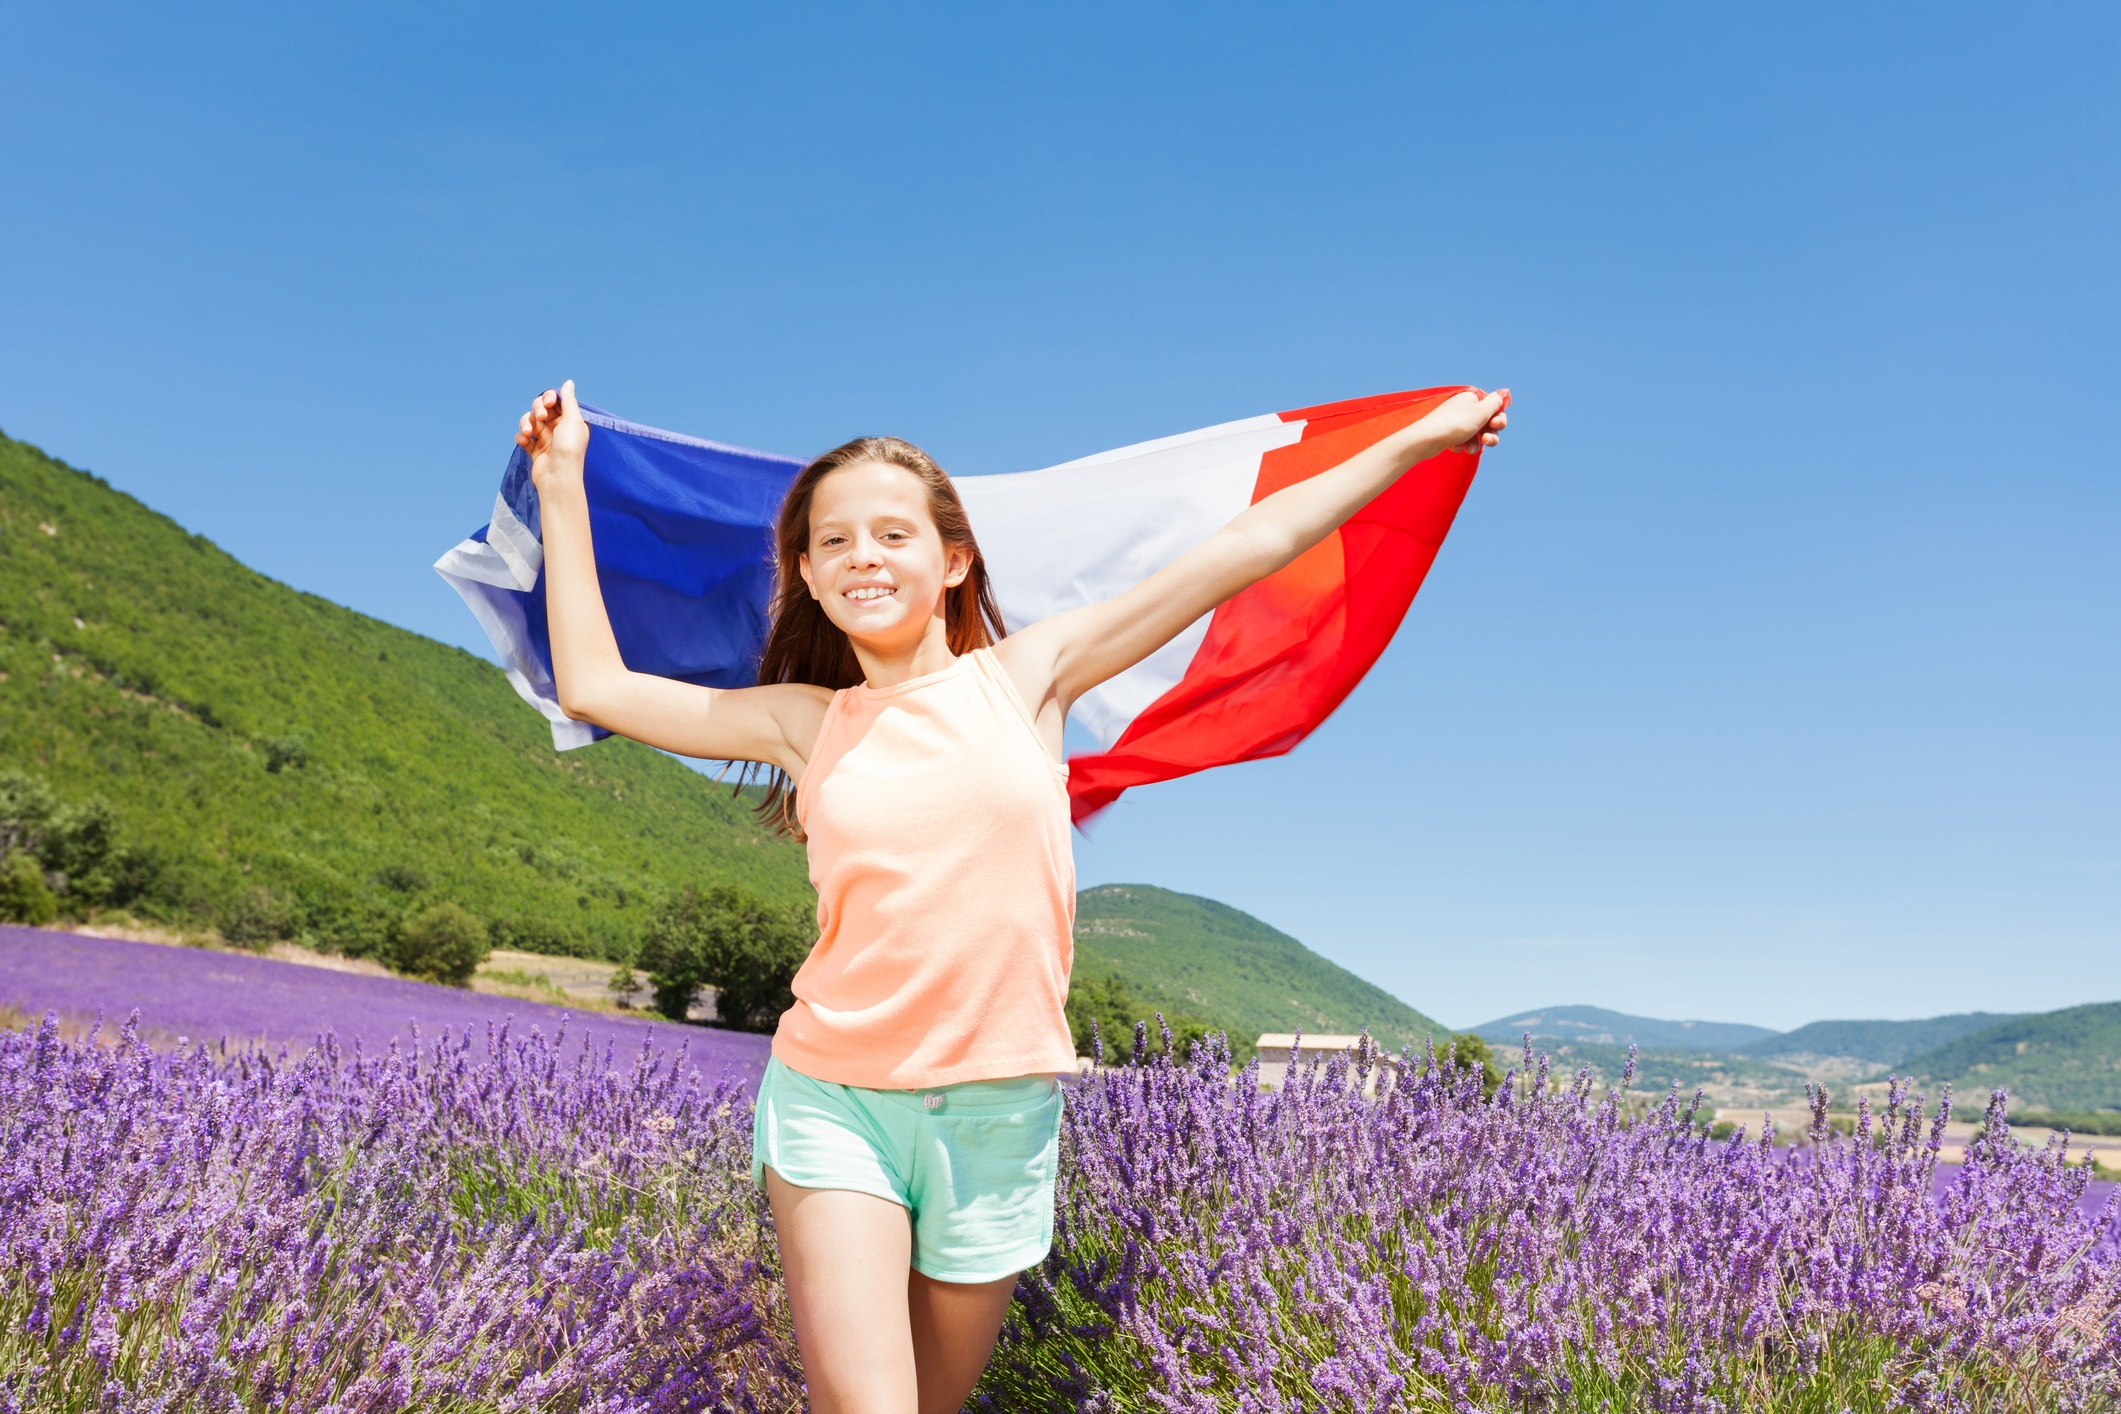 New figures reveal France is top choice for Brits relocating with children